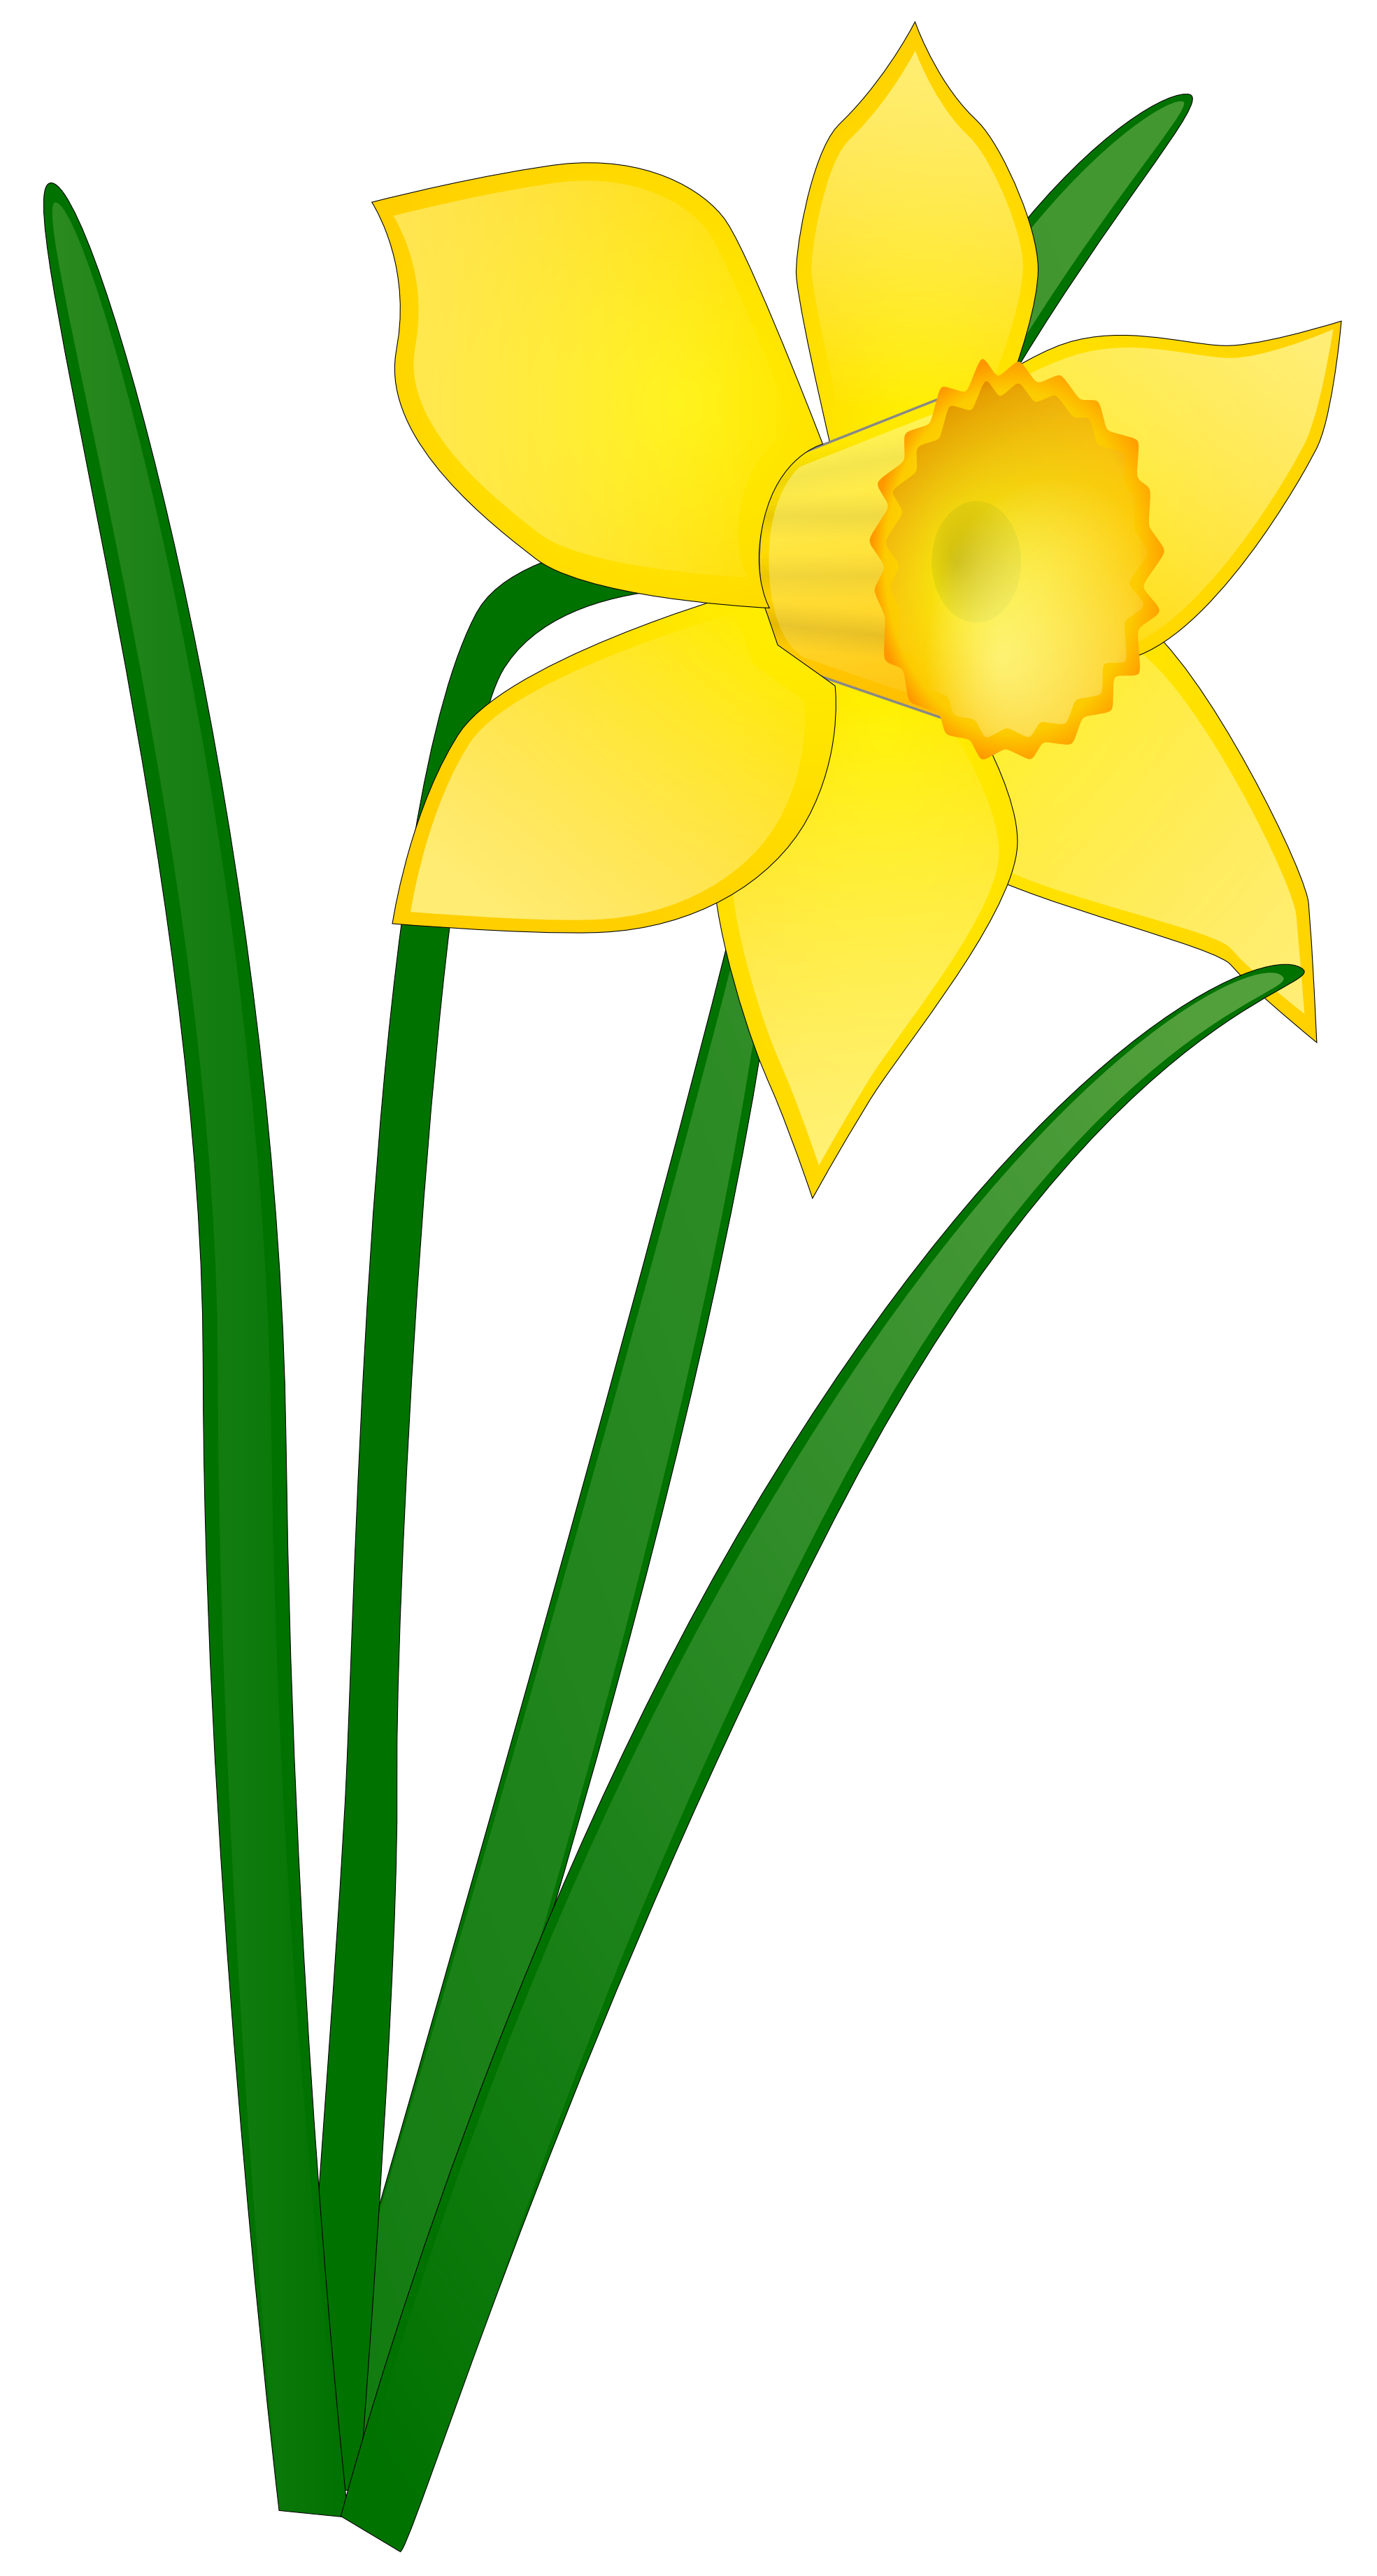 Flower clip art panda. Daffodil clipart bloom royalty free stock